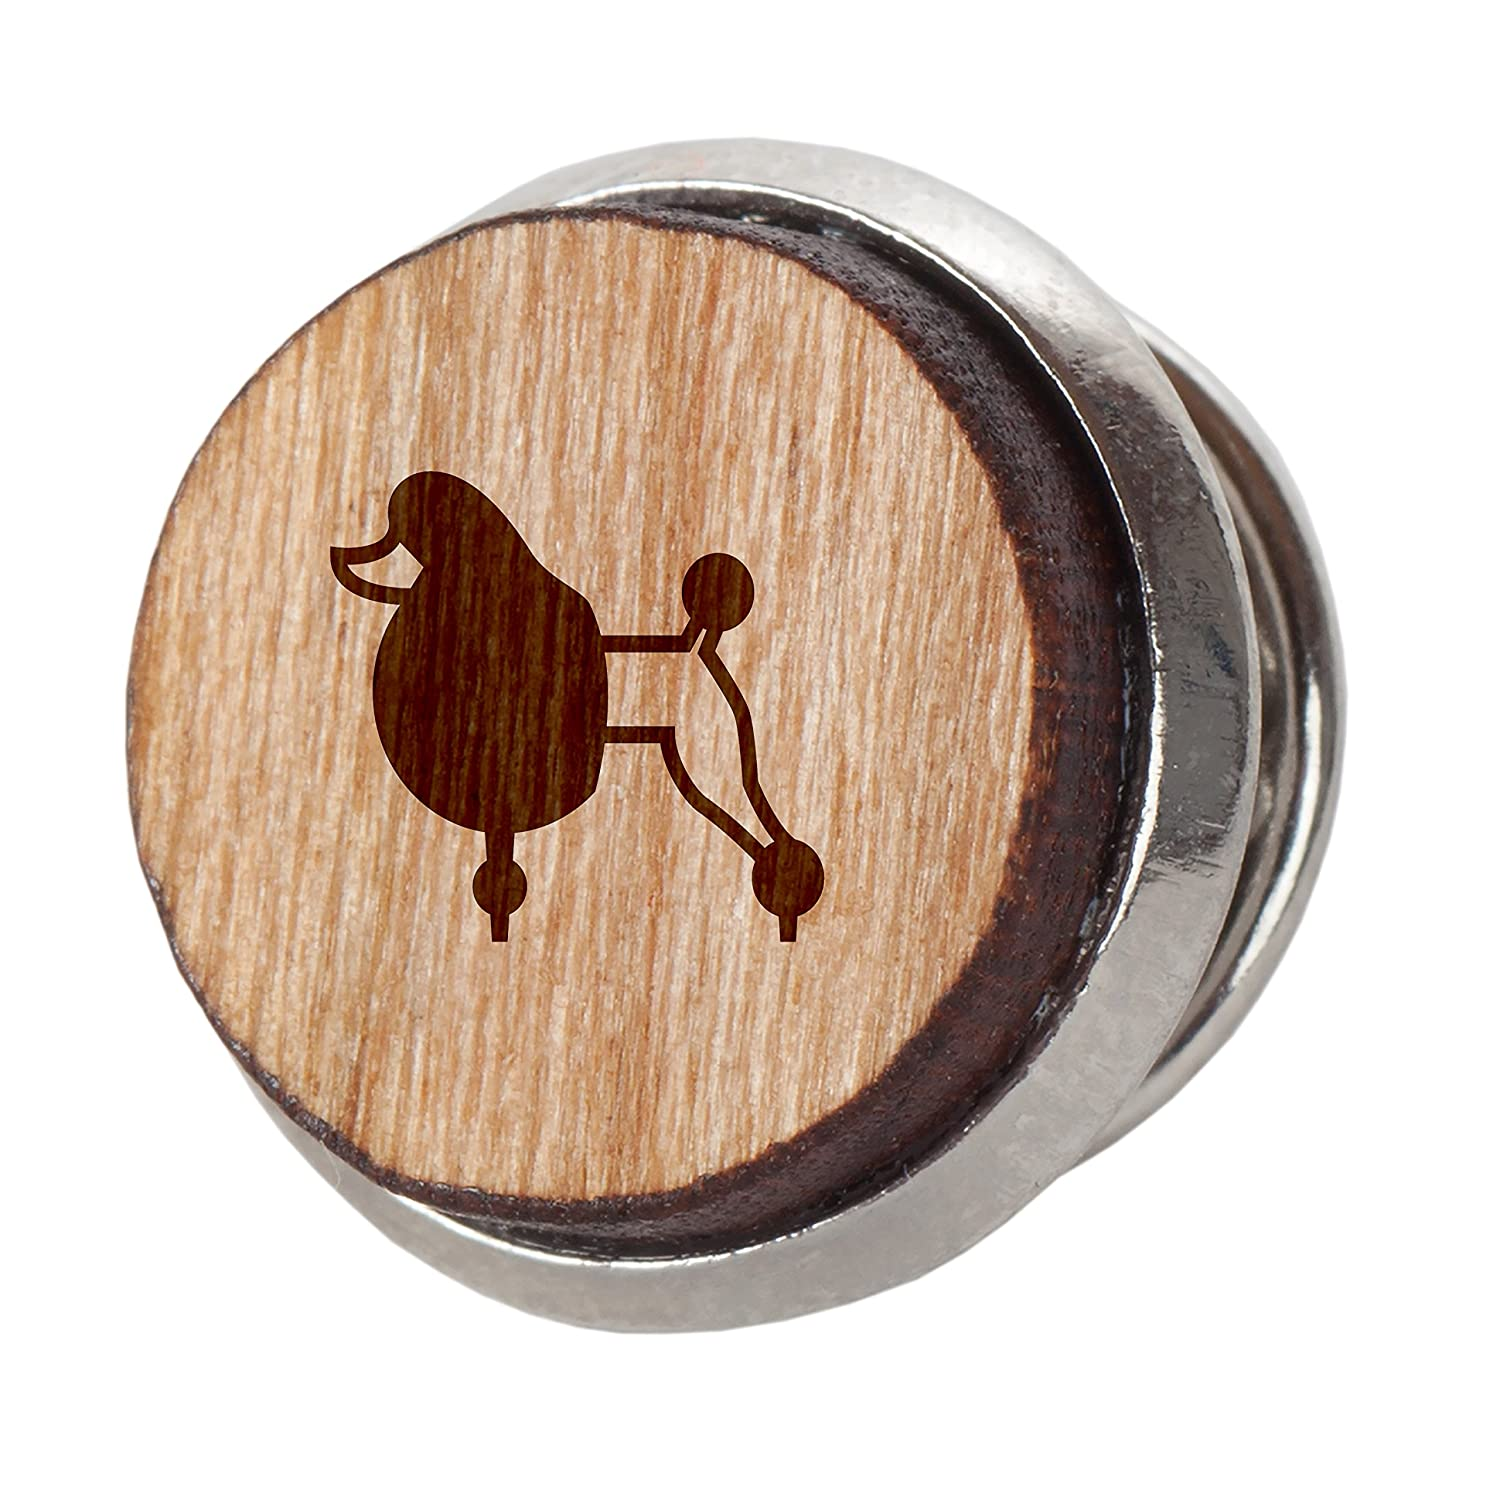 Poodle Stylish Cherry Wood Tie Tack Engraved Tie Tack Gift 12Mm Simple Tie Clip with Laser Engraved Design